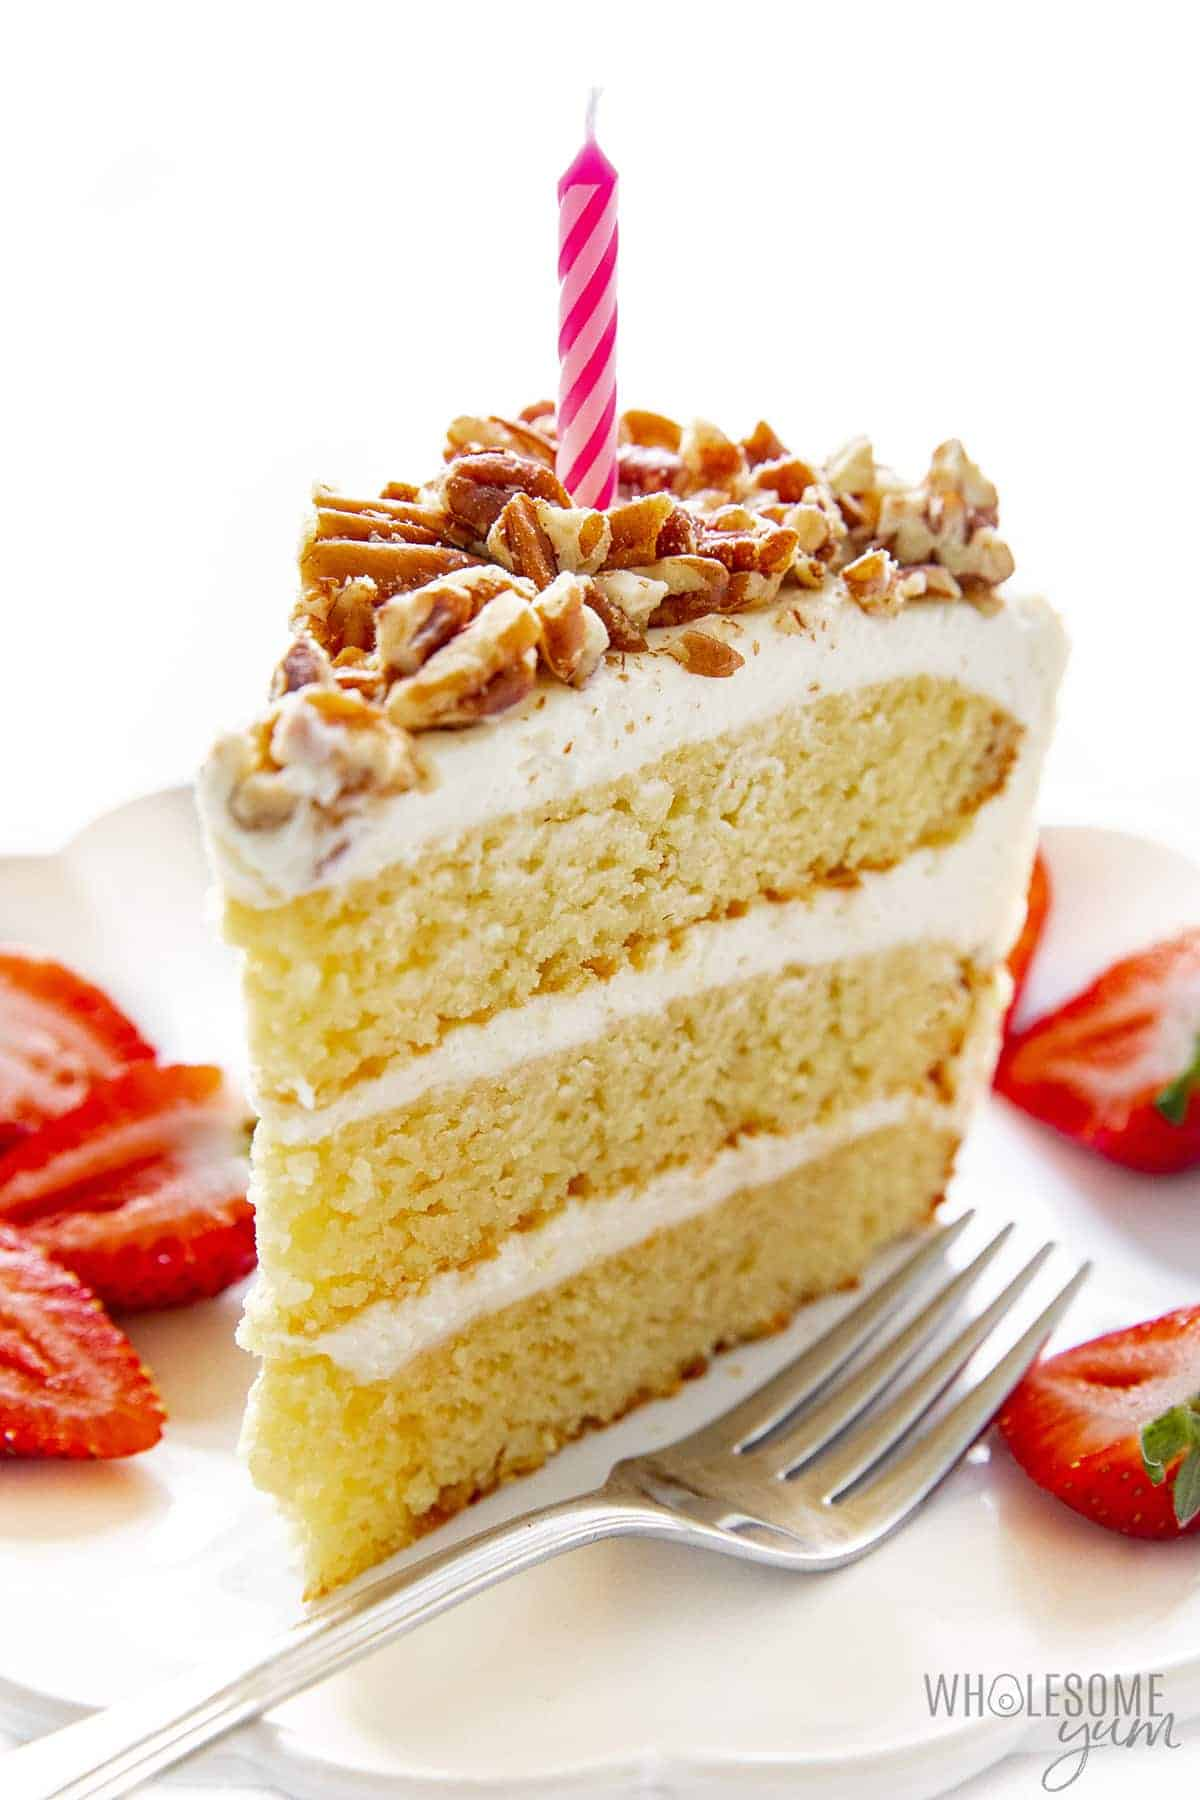 Slice of sugar free birthday cake with candle